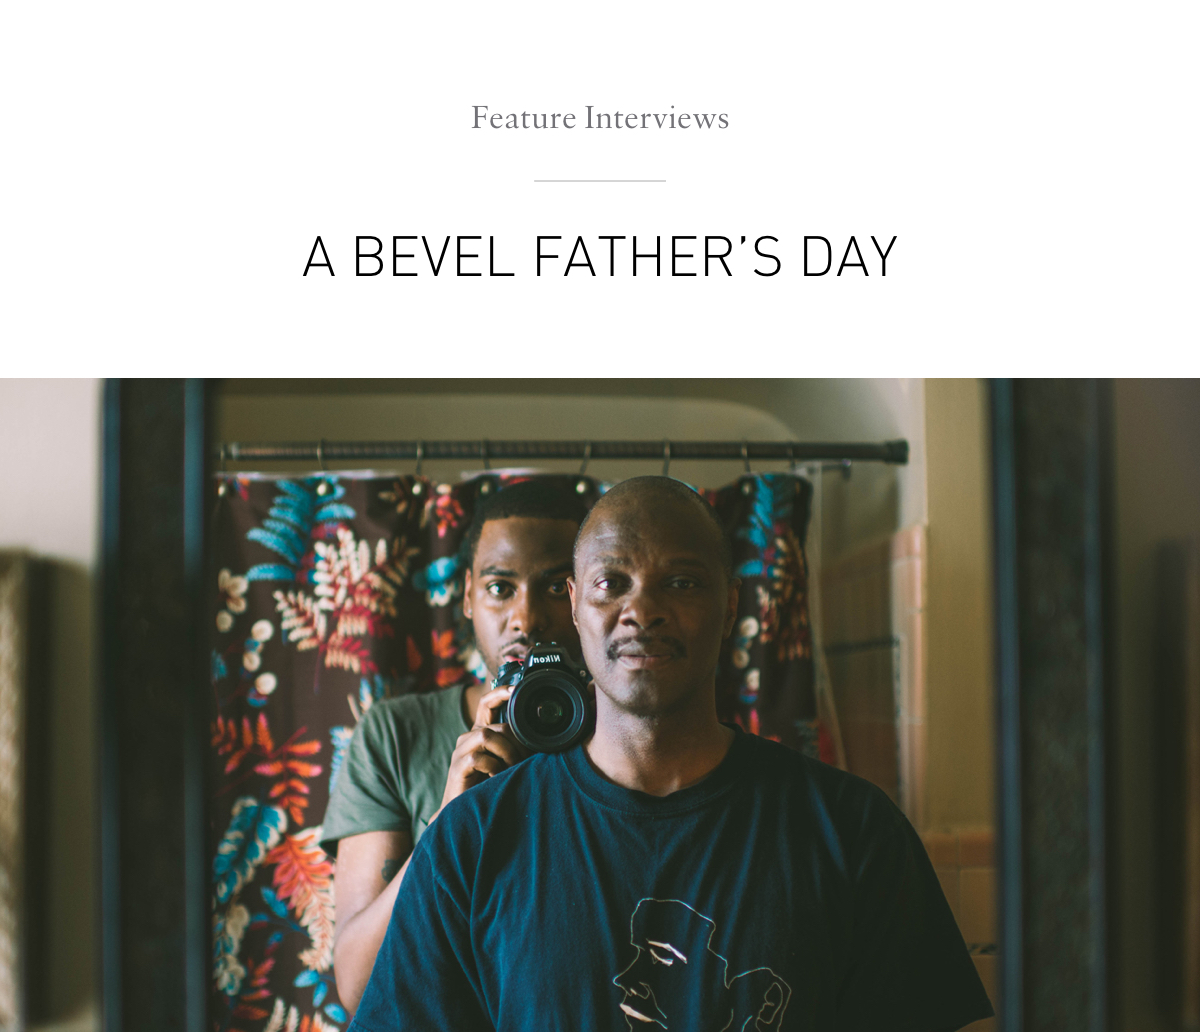 A Bevel Father's Day